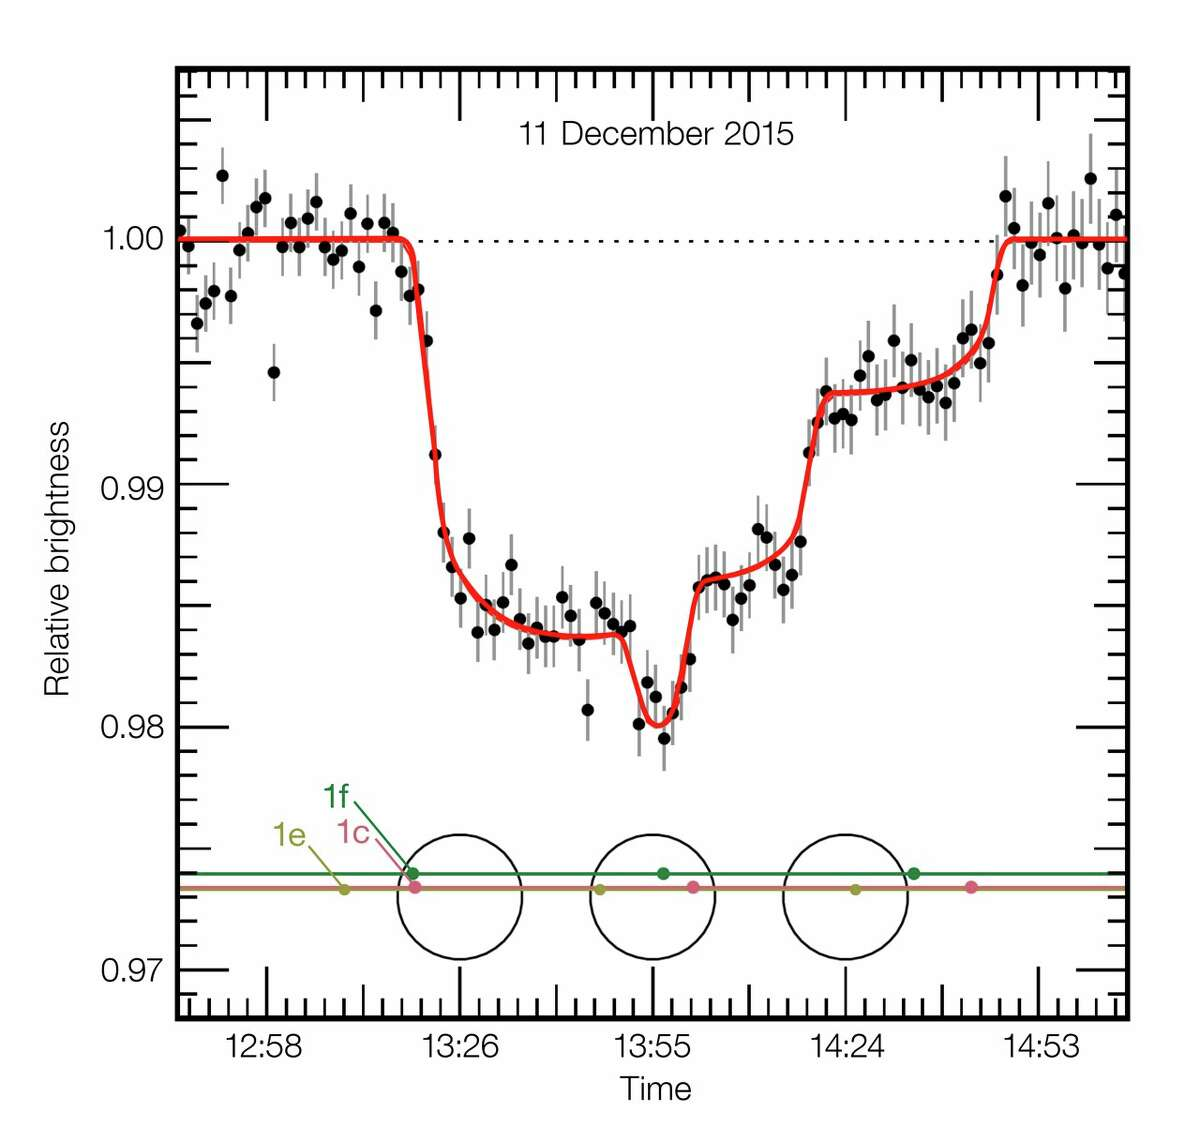 ESO caption: This plot shows the varying brightness of the faint dwarf star TRAPPIST-1 during an unusual triple transit event on 11 December 2015. As the star was monitored using the HAWK-I instrument on ESO's Very Large Telescope three planets passed across the disc of the star, each causing some of its light to be blocked. This historic light curve shows for the first time three temperate Earth-sized planets, two of them in the habitable zone, passing in front of their star.